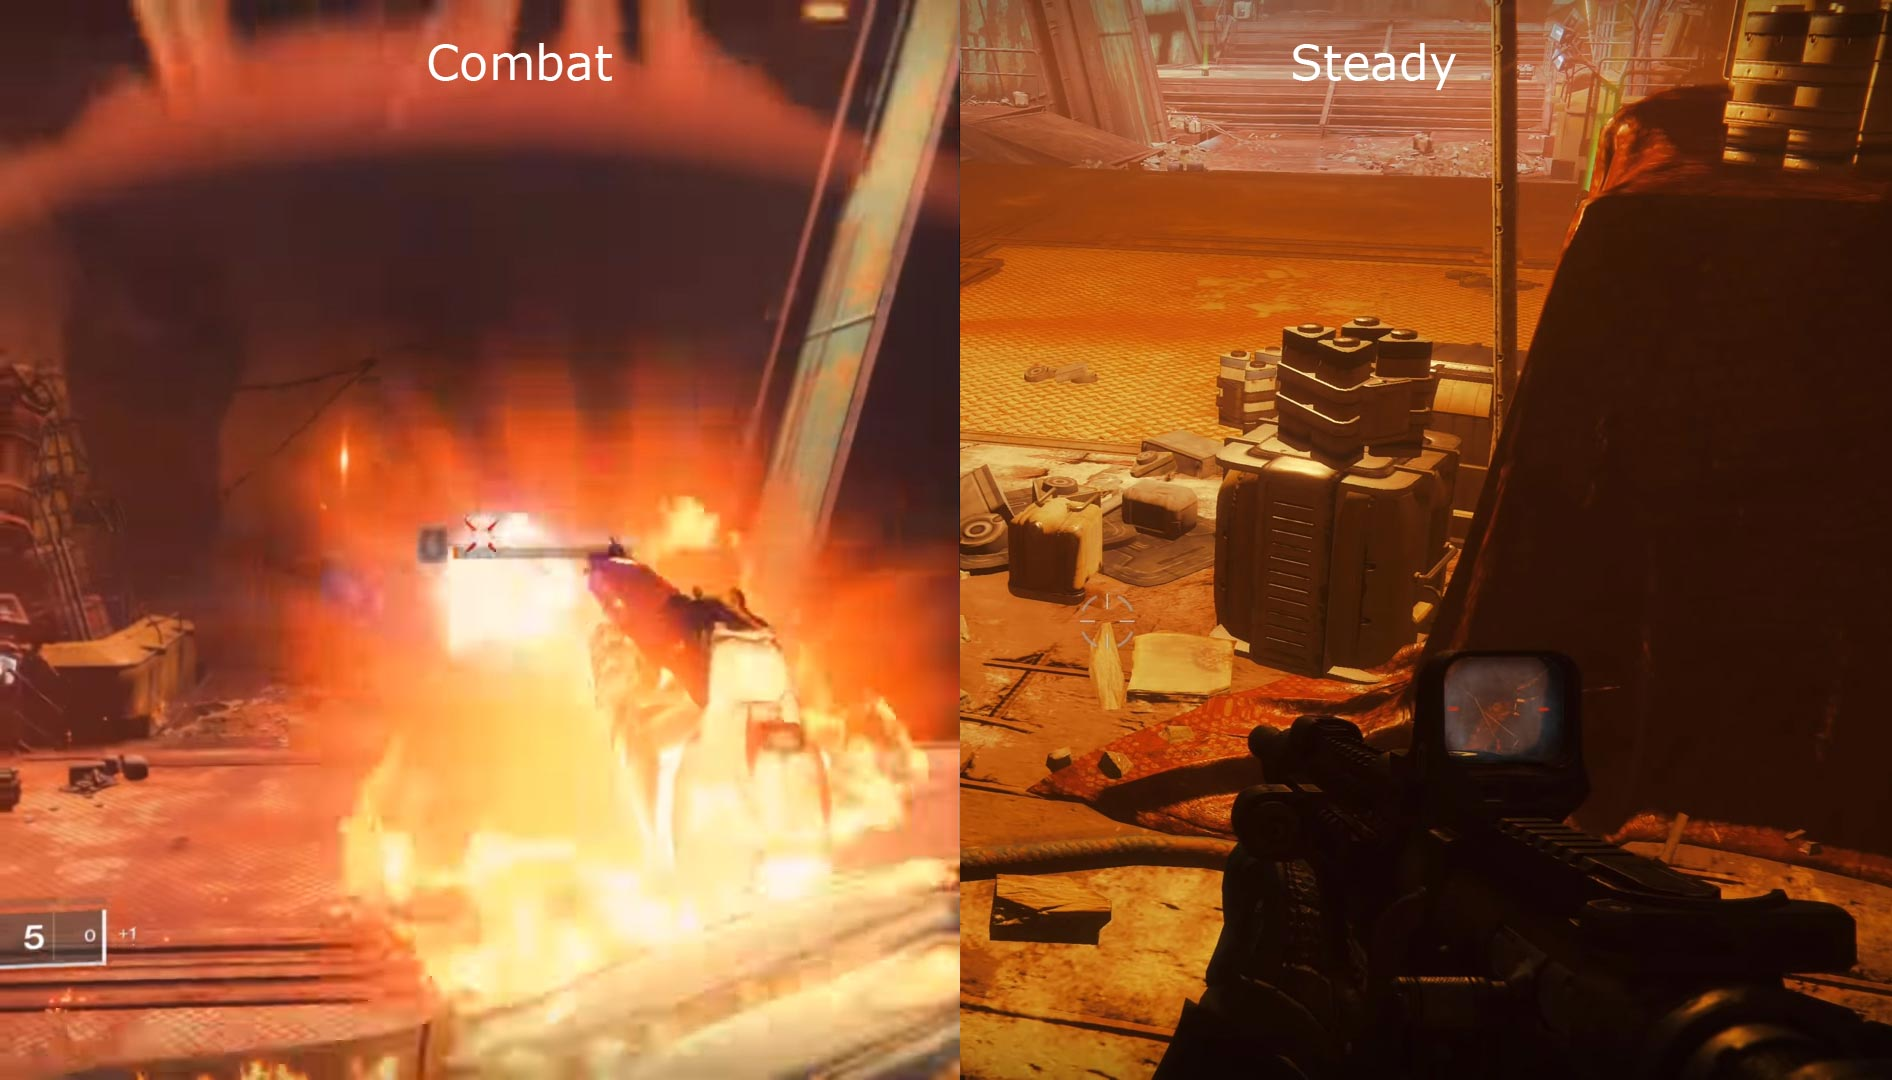 Destiny 2 Combat and Steady Stage Stadia